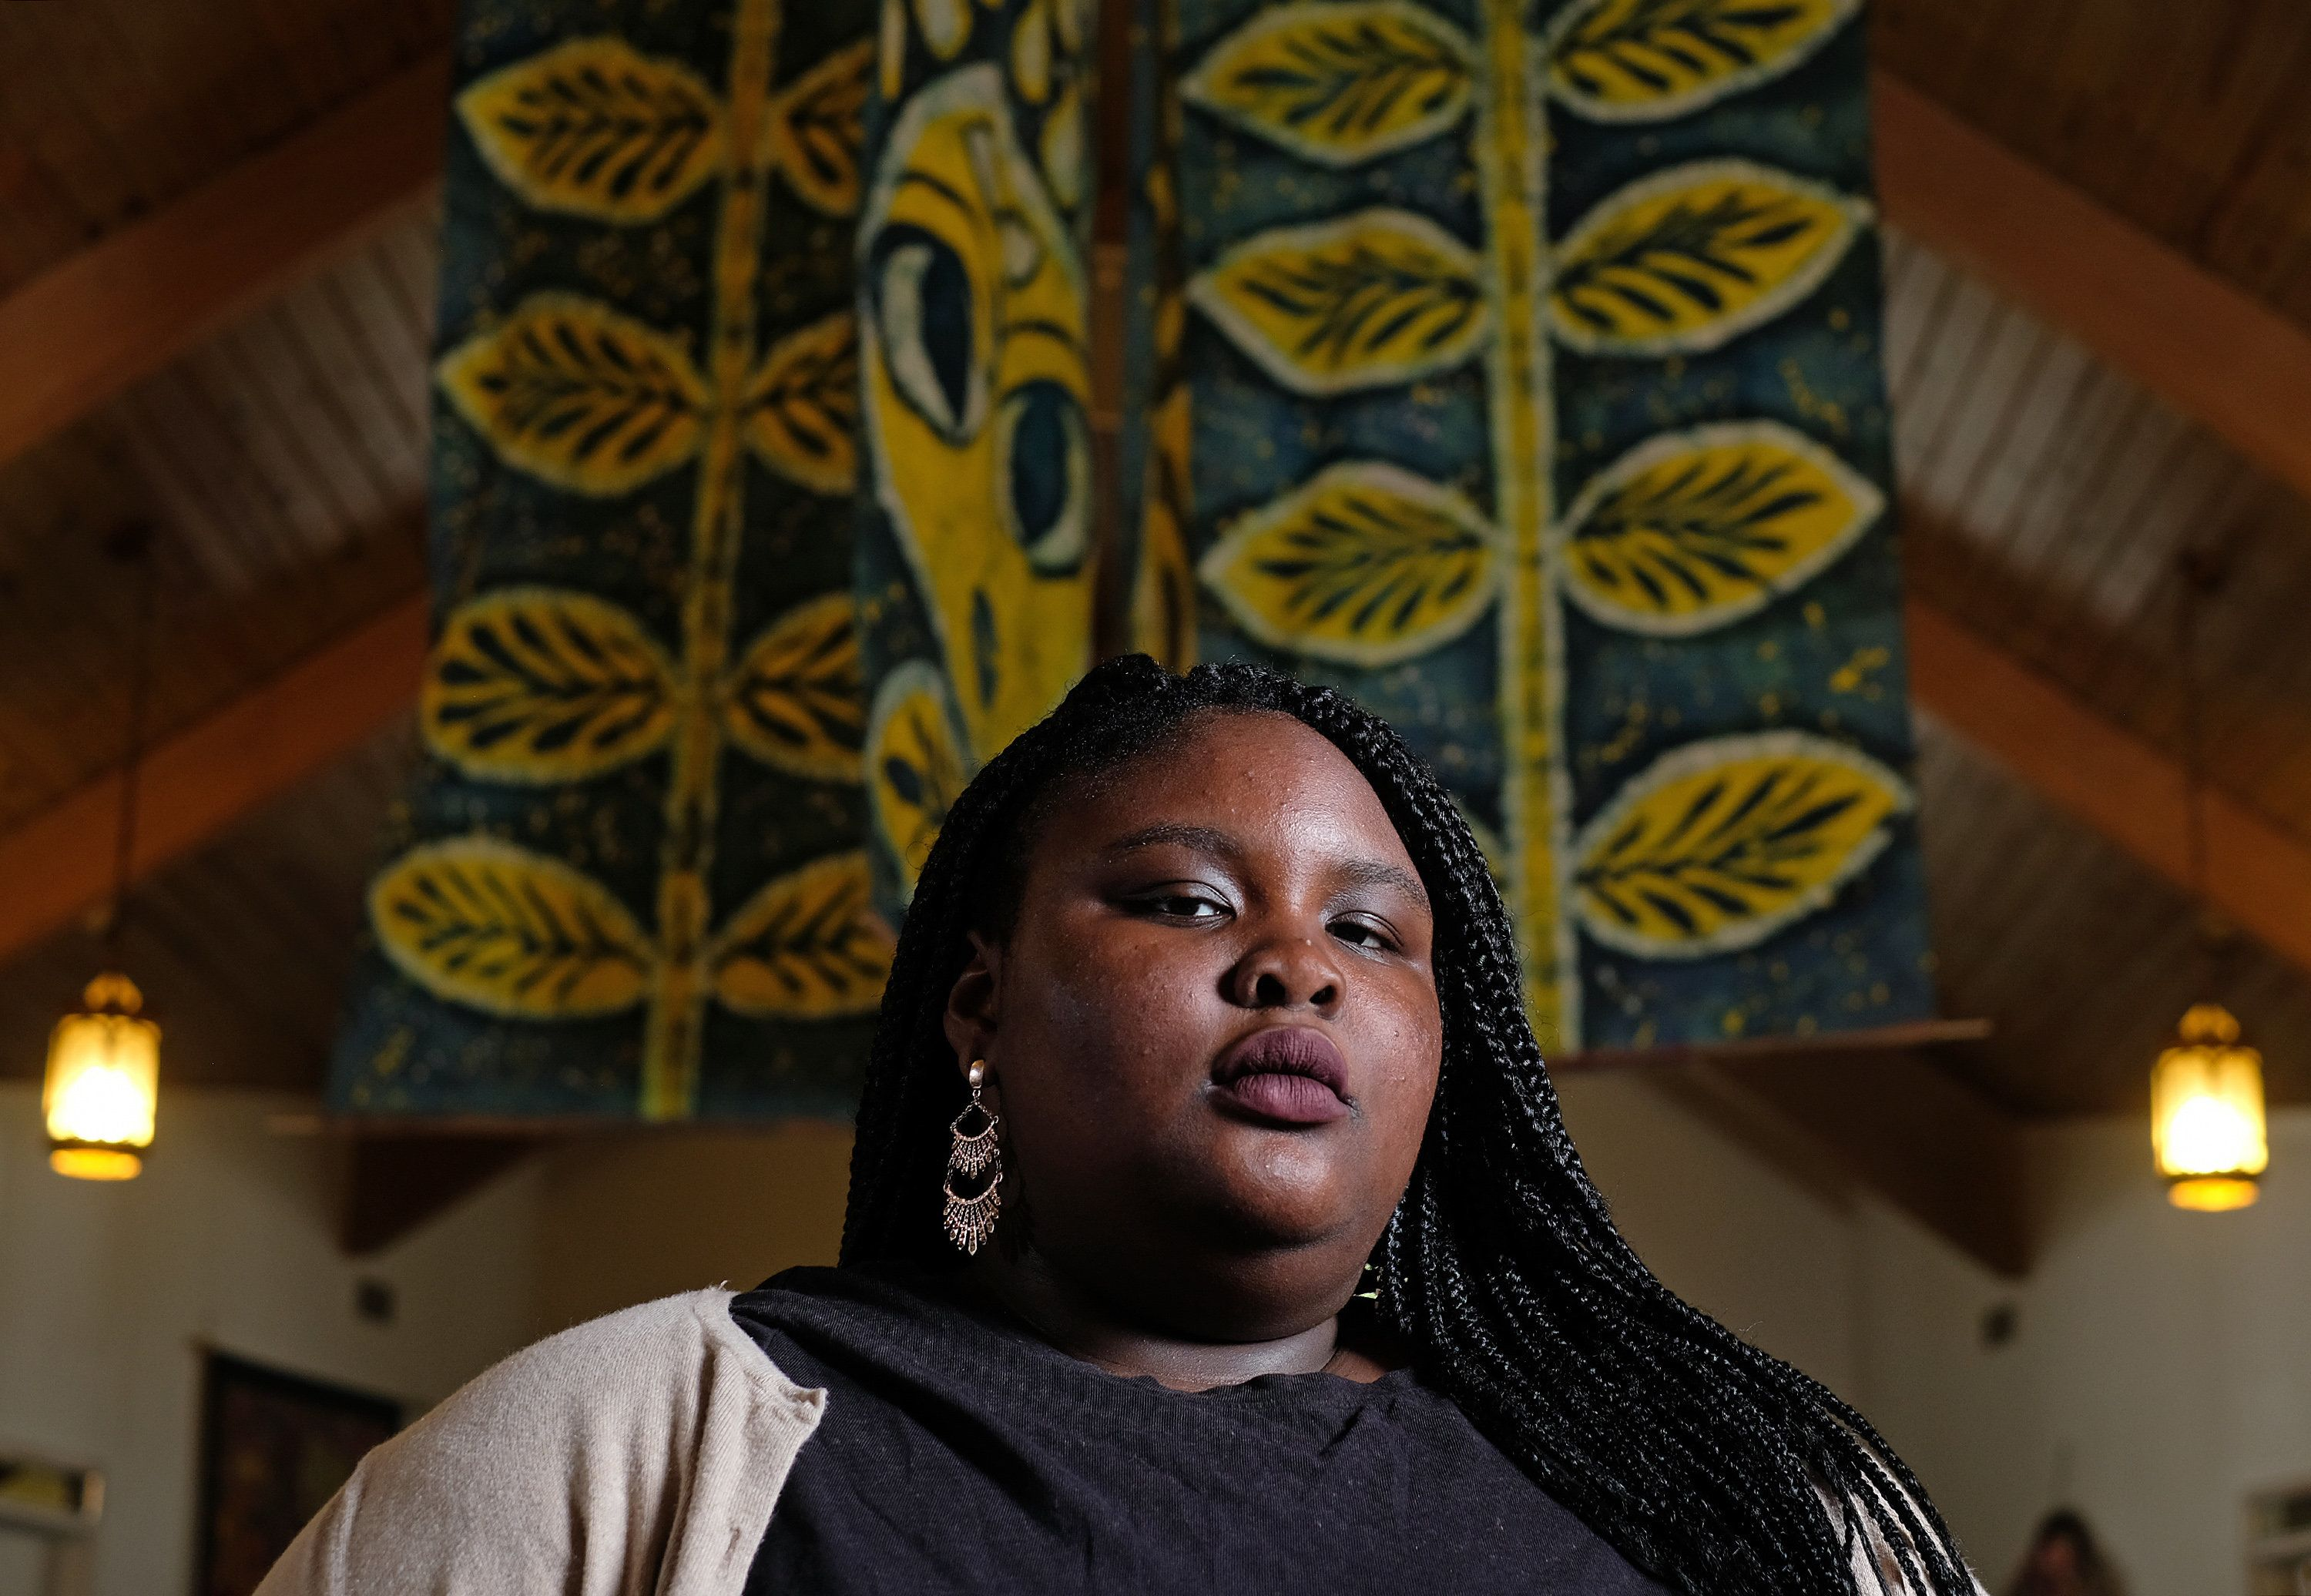 Charlottesville, VA -  Aug. 3: Zyahna Bryant wrote a petition in March of 2016 asking the City of Charlottesville to take down a statue of Robert E. Lee from a city park during her freshman year at Charlottesville High School. She was photographed in the sancturary of Sojourners United Church of Christ, Friday August 3, 2018 (Photo by Norm Shafer/ For The Washington Post via Getty Images).